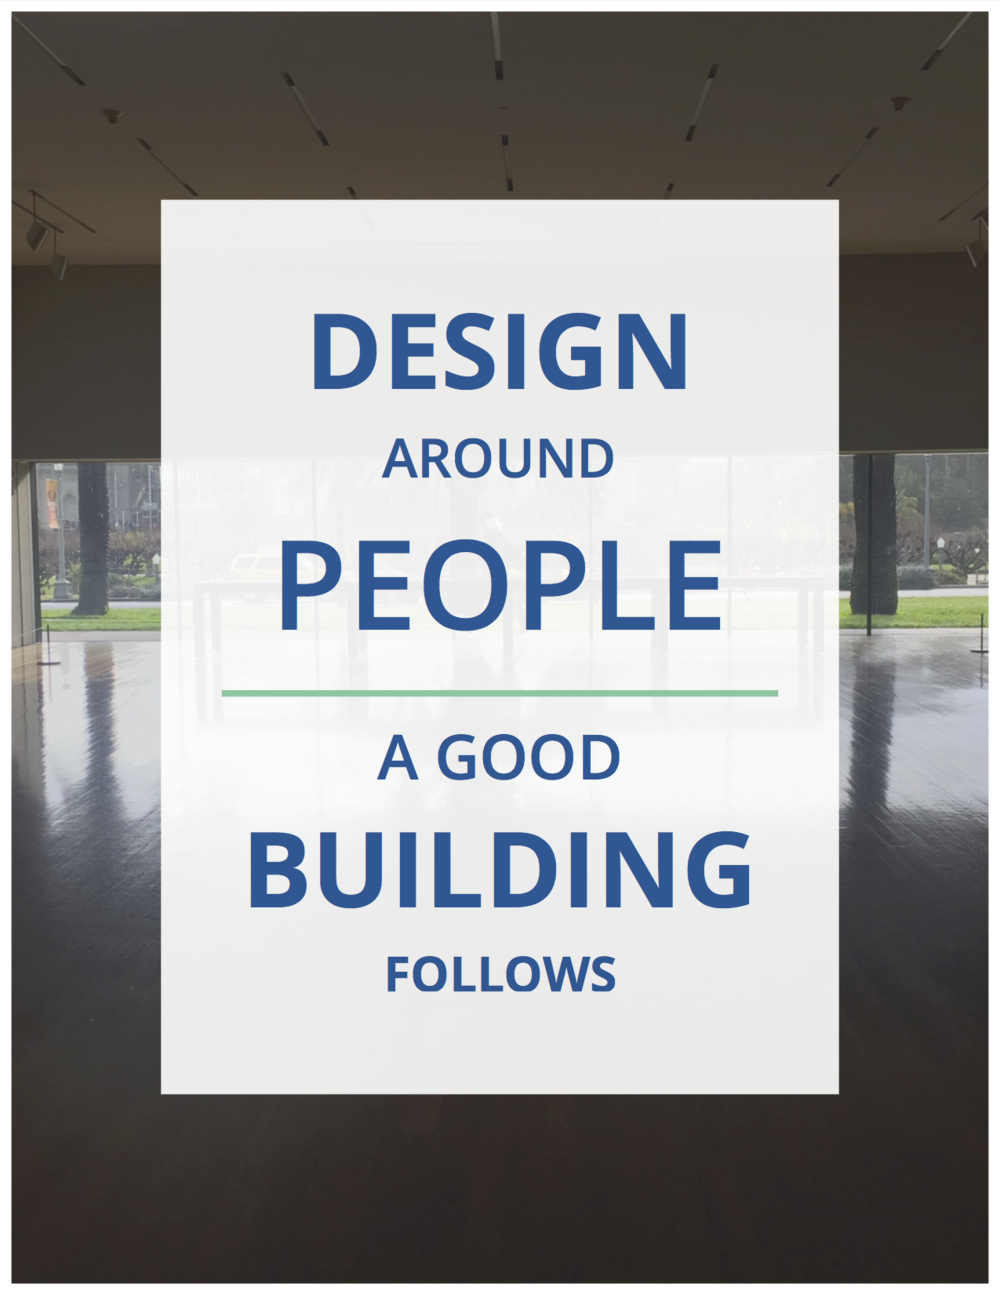 Design Around People A Good Building Follows